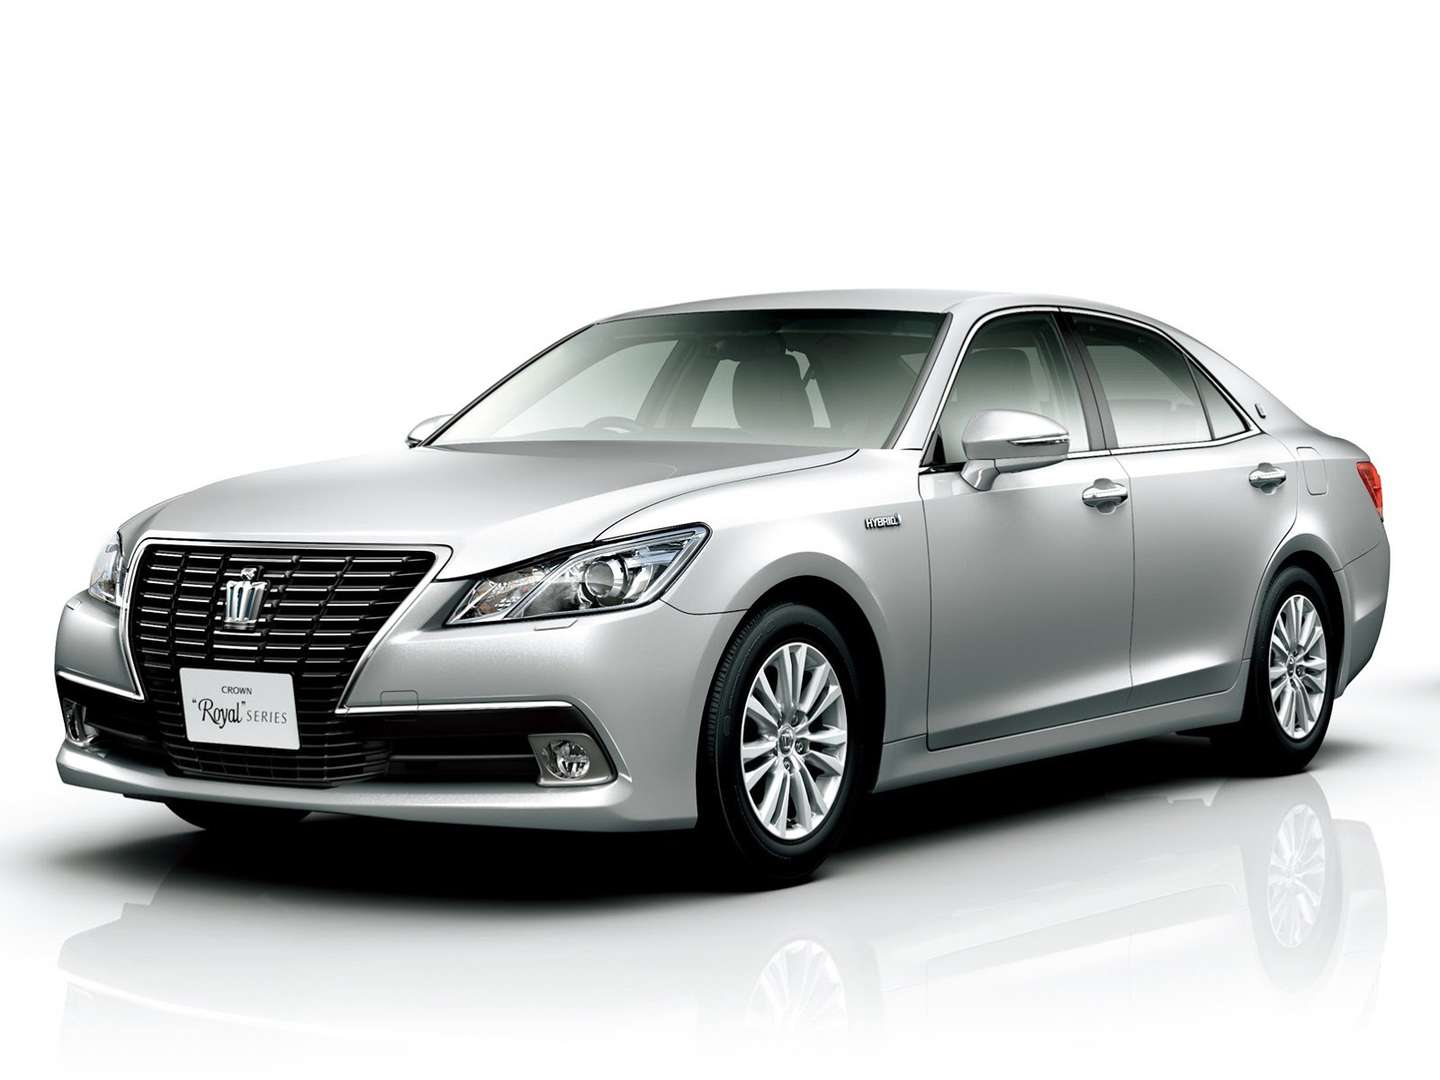 Toyota Crown #7825825